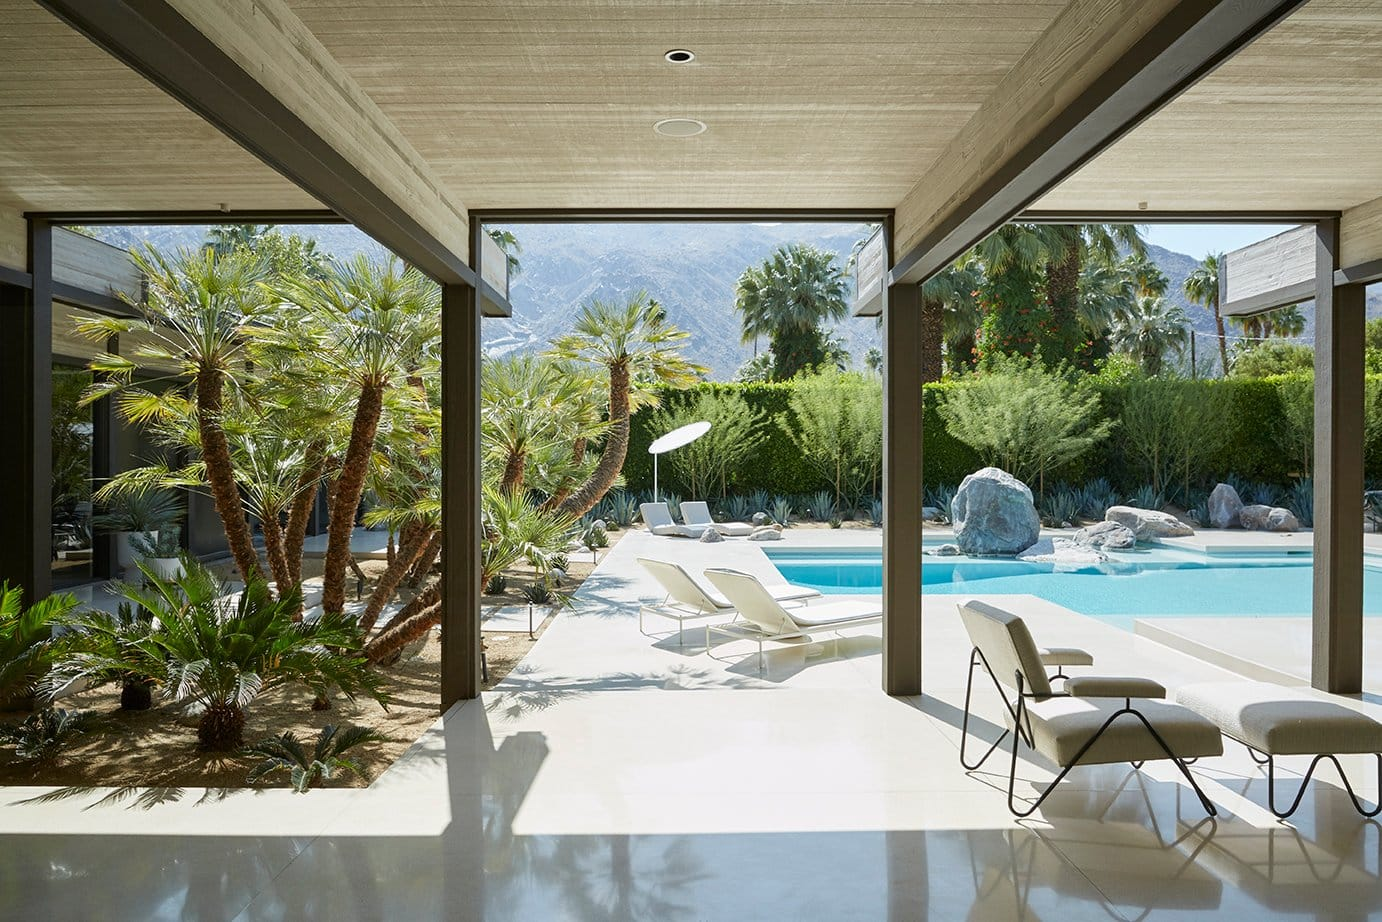 A modernist Palm Springs house renovated by Marmol Radziner.